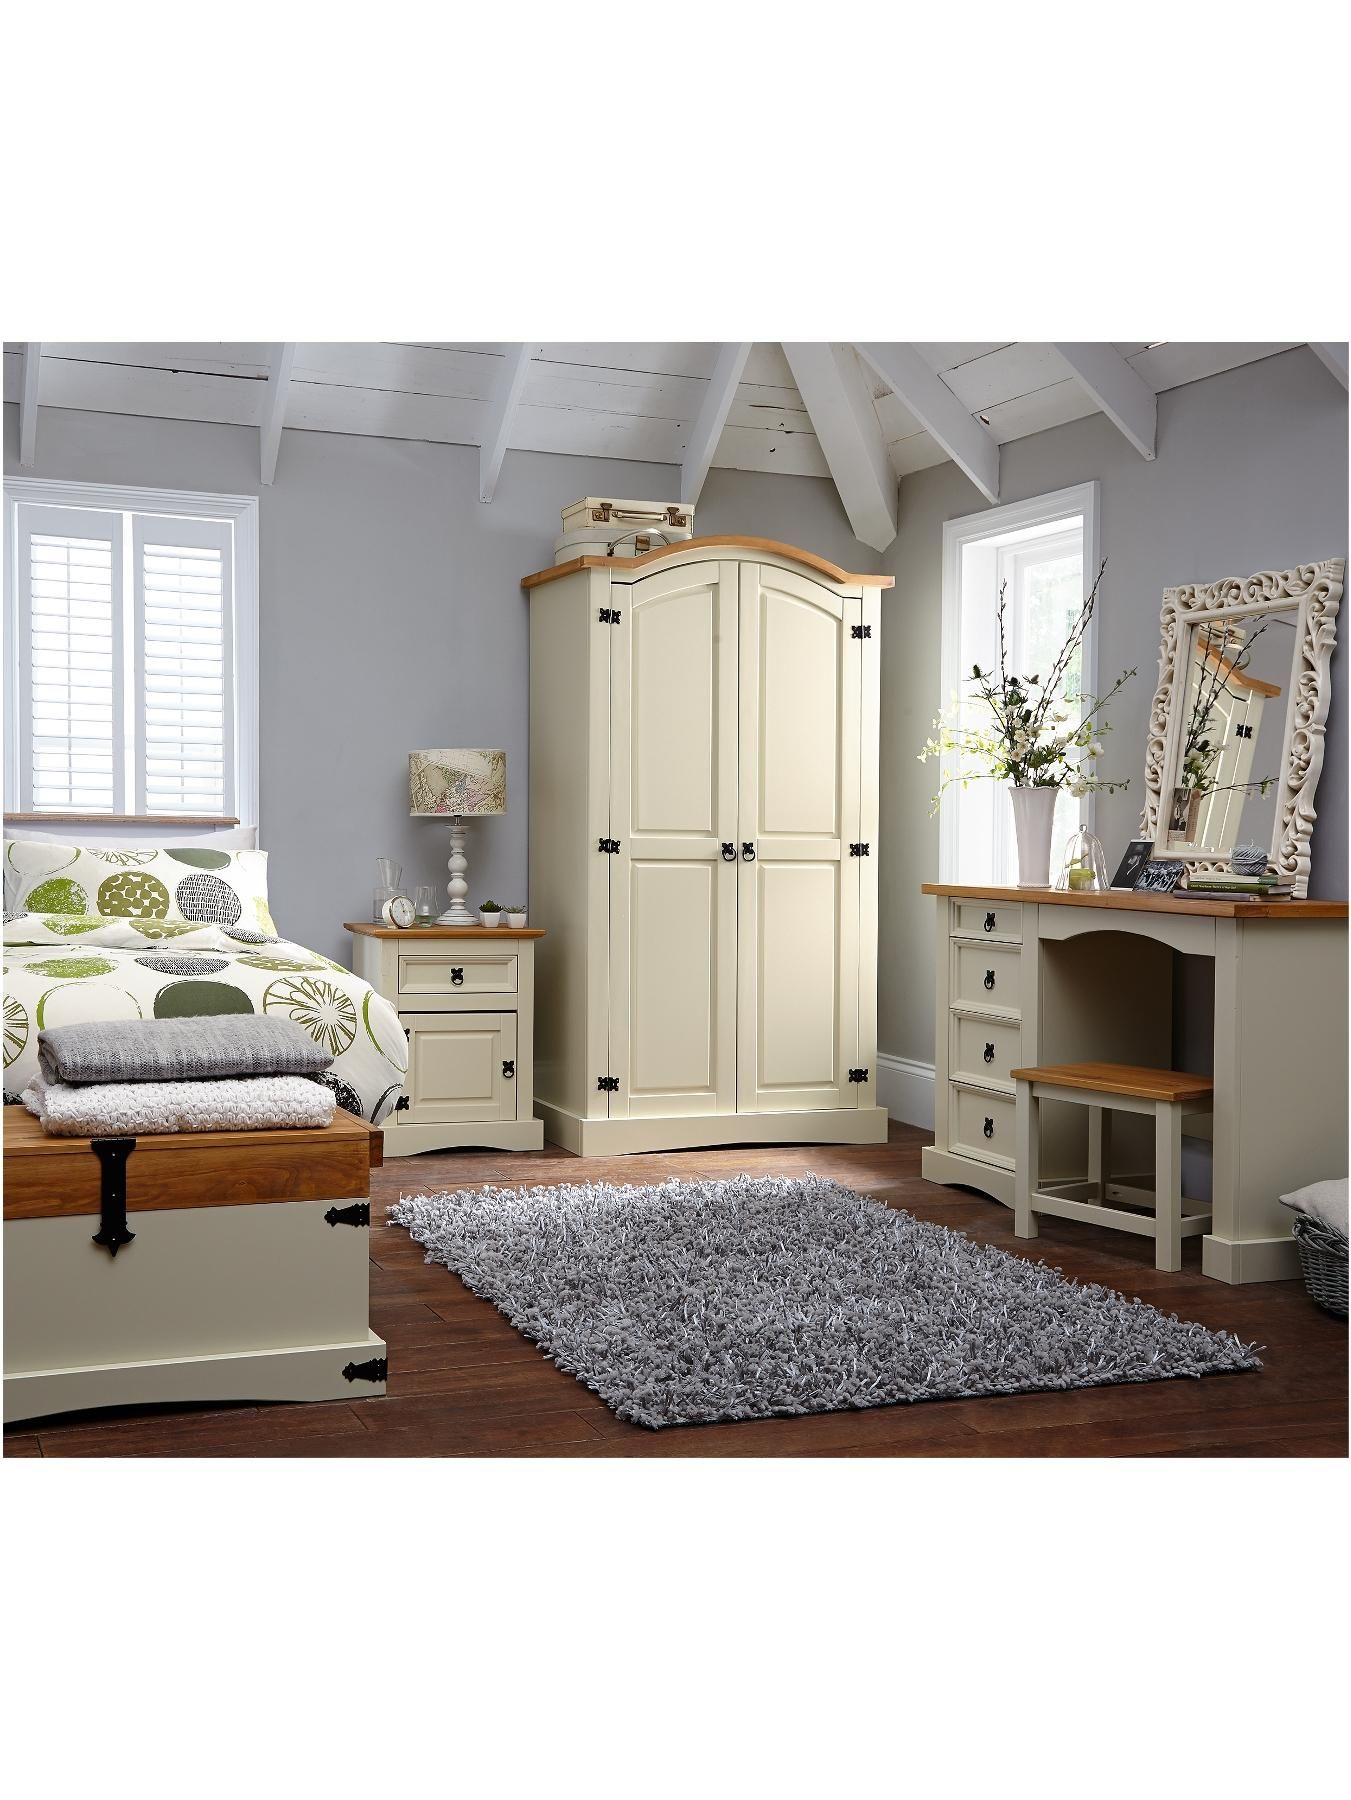 Womens mens and kids fashion furniture electricals - Childrens pine bedroom furniture ...